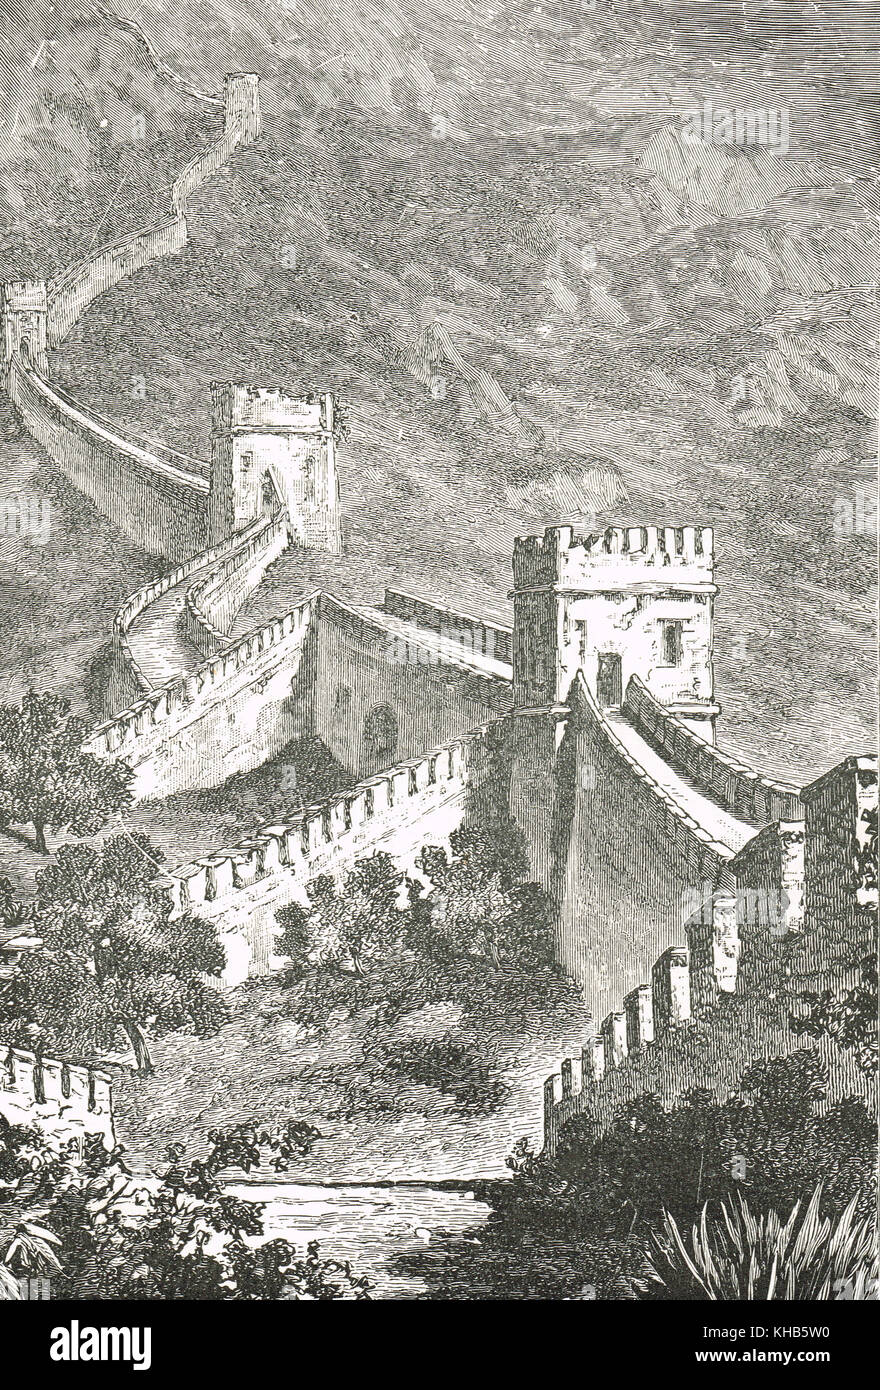 La grande muraille de Chine, 19e siècle view Photo Stock